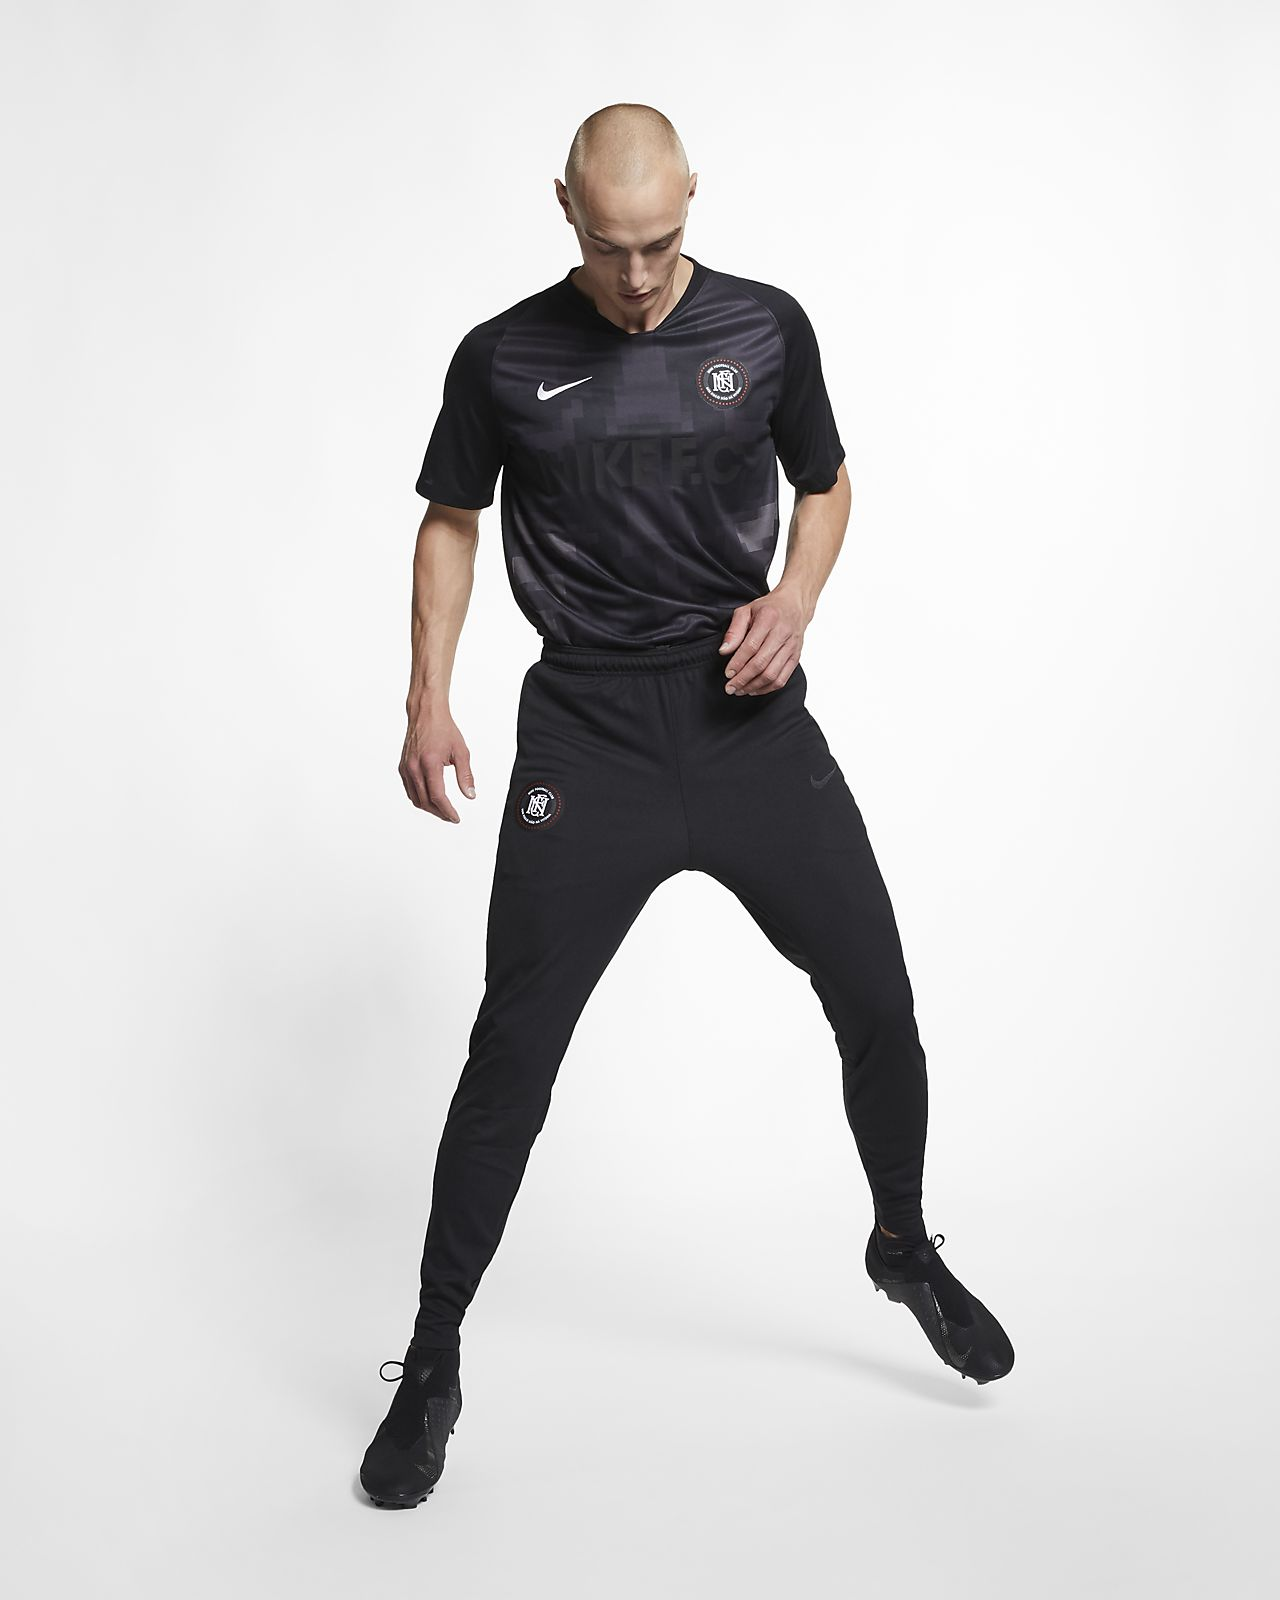 Nike F.C. Men's Soccer Track Pants